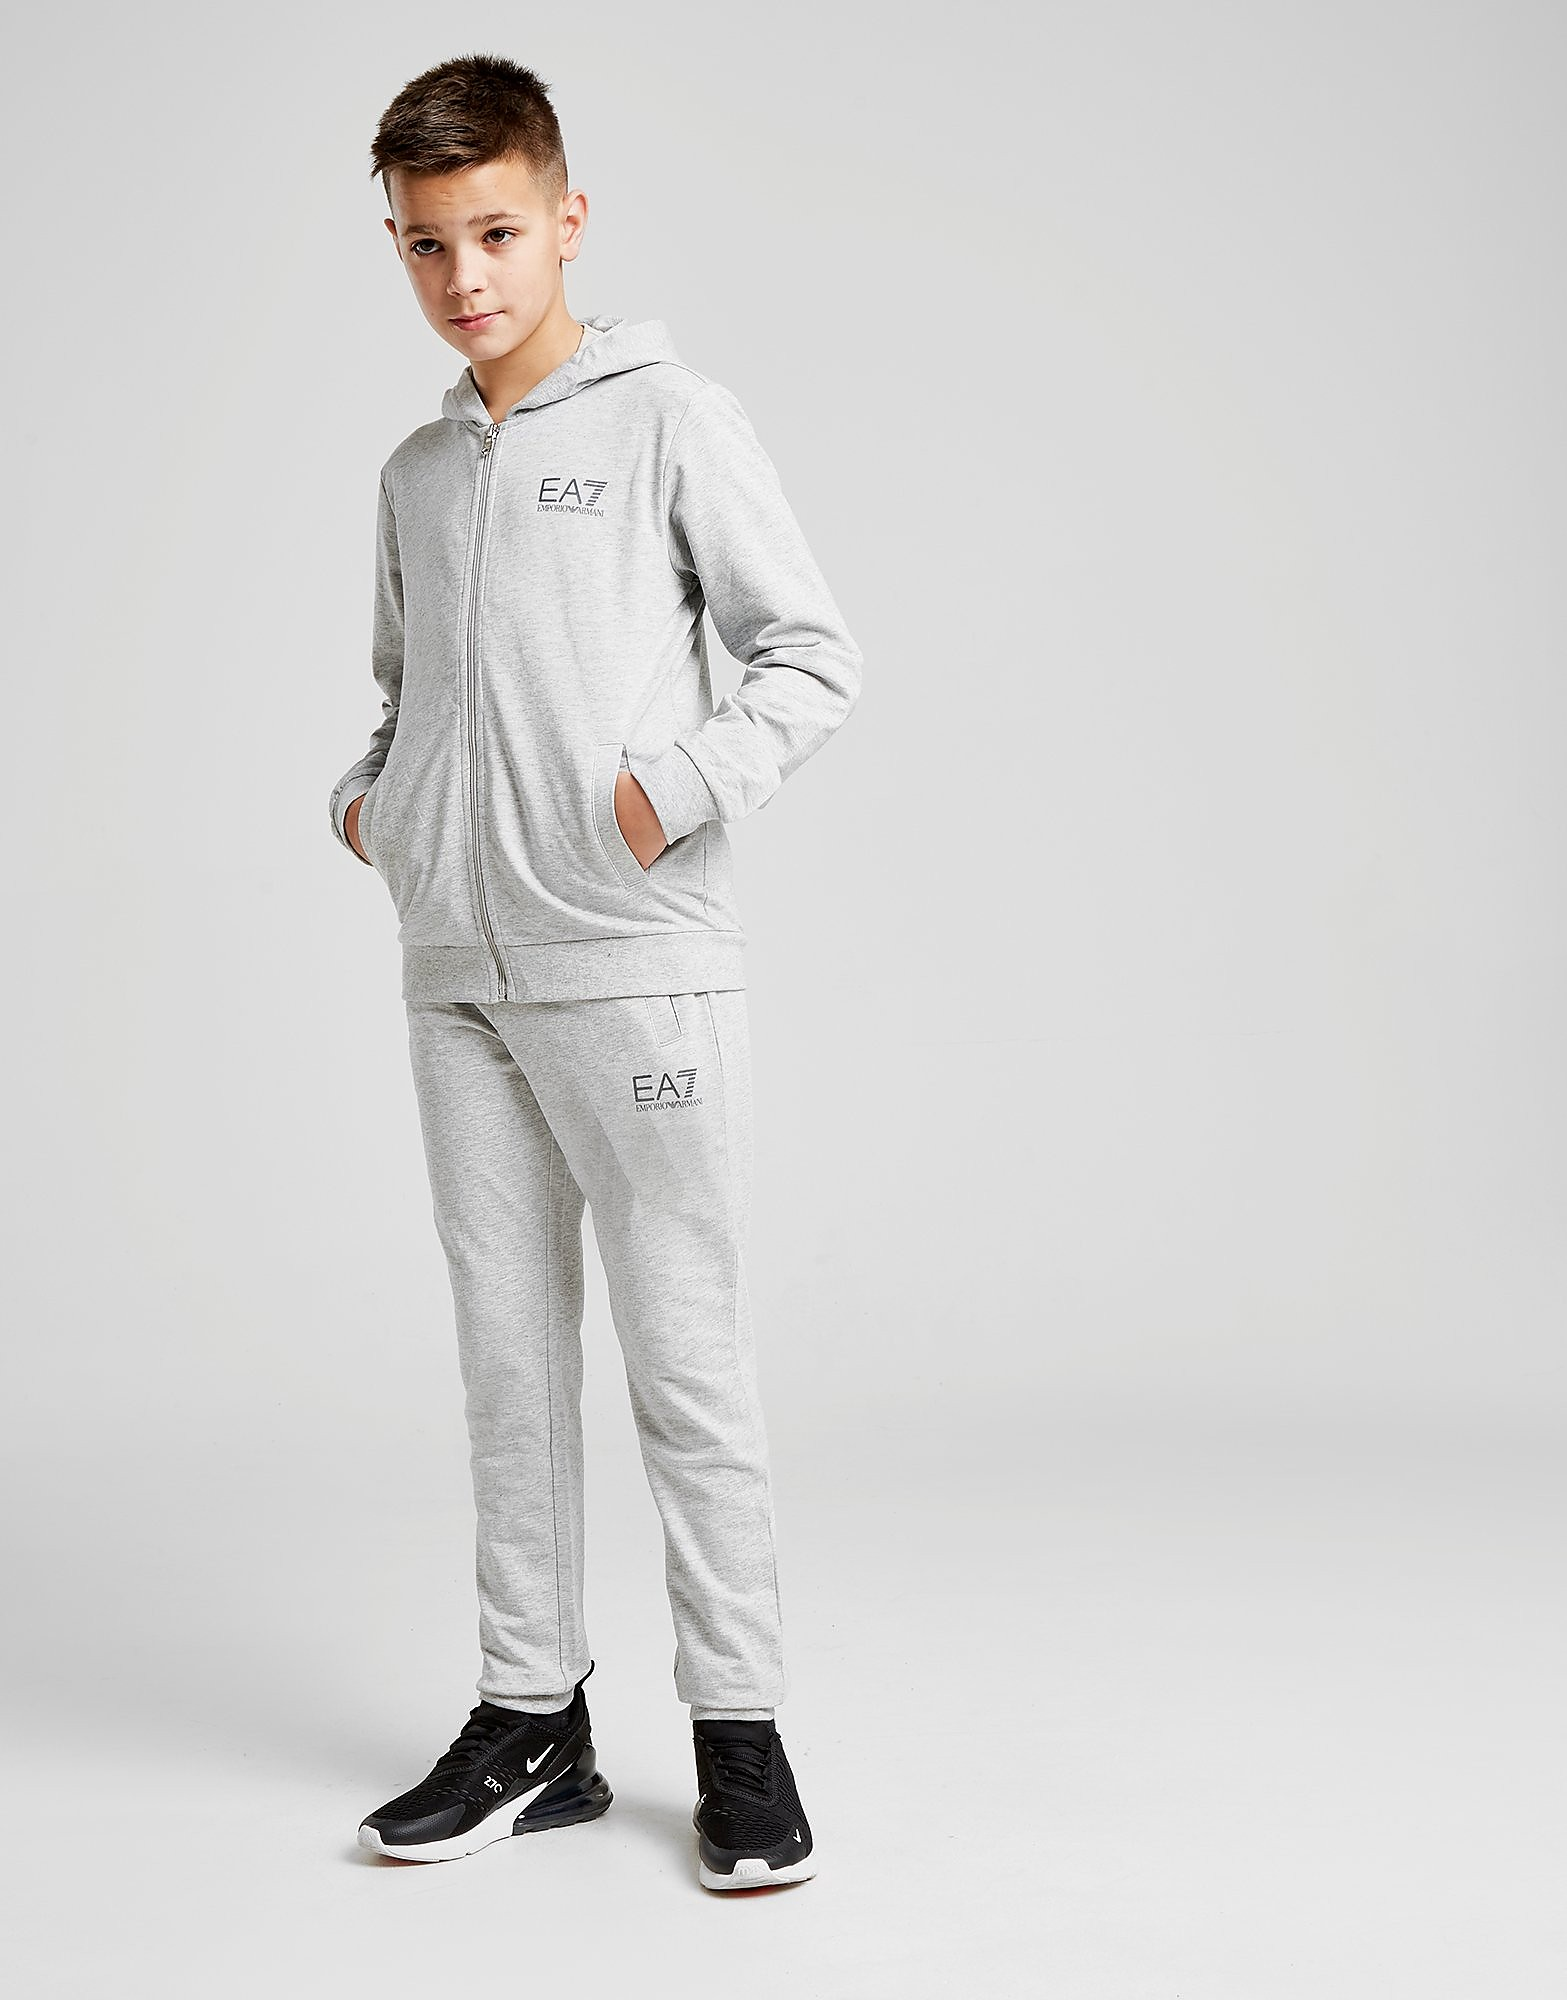 Emporio Armani EA7 Core Fleece Full Zip Suit Junior - Grijs - Kind